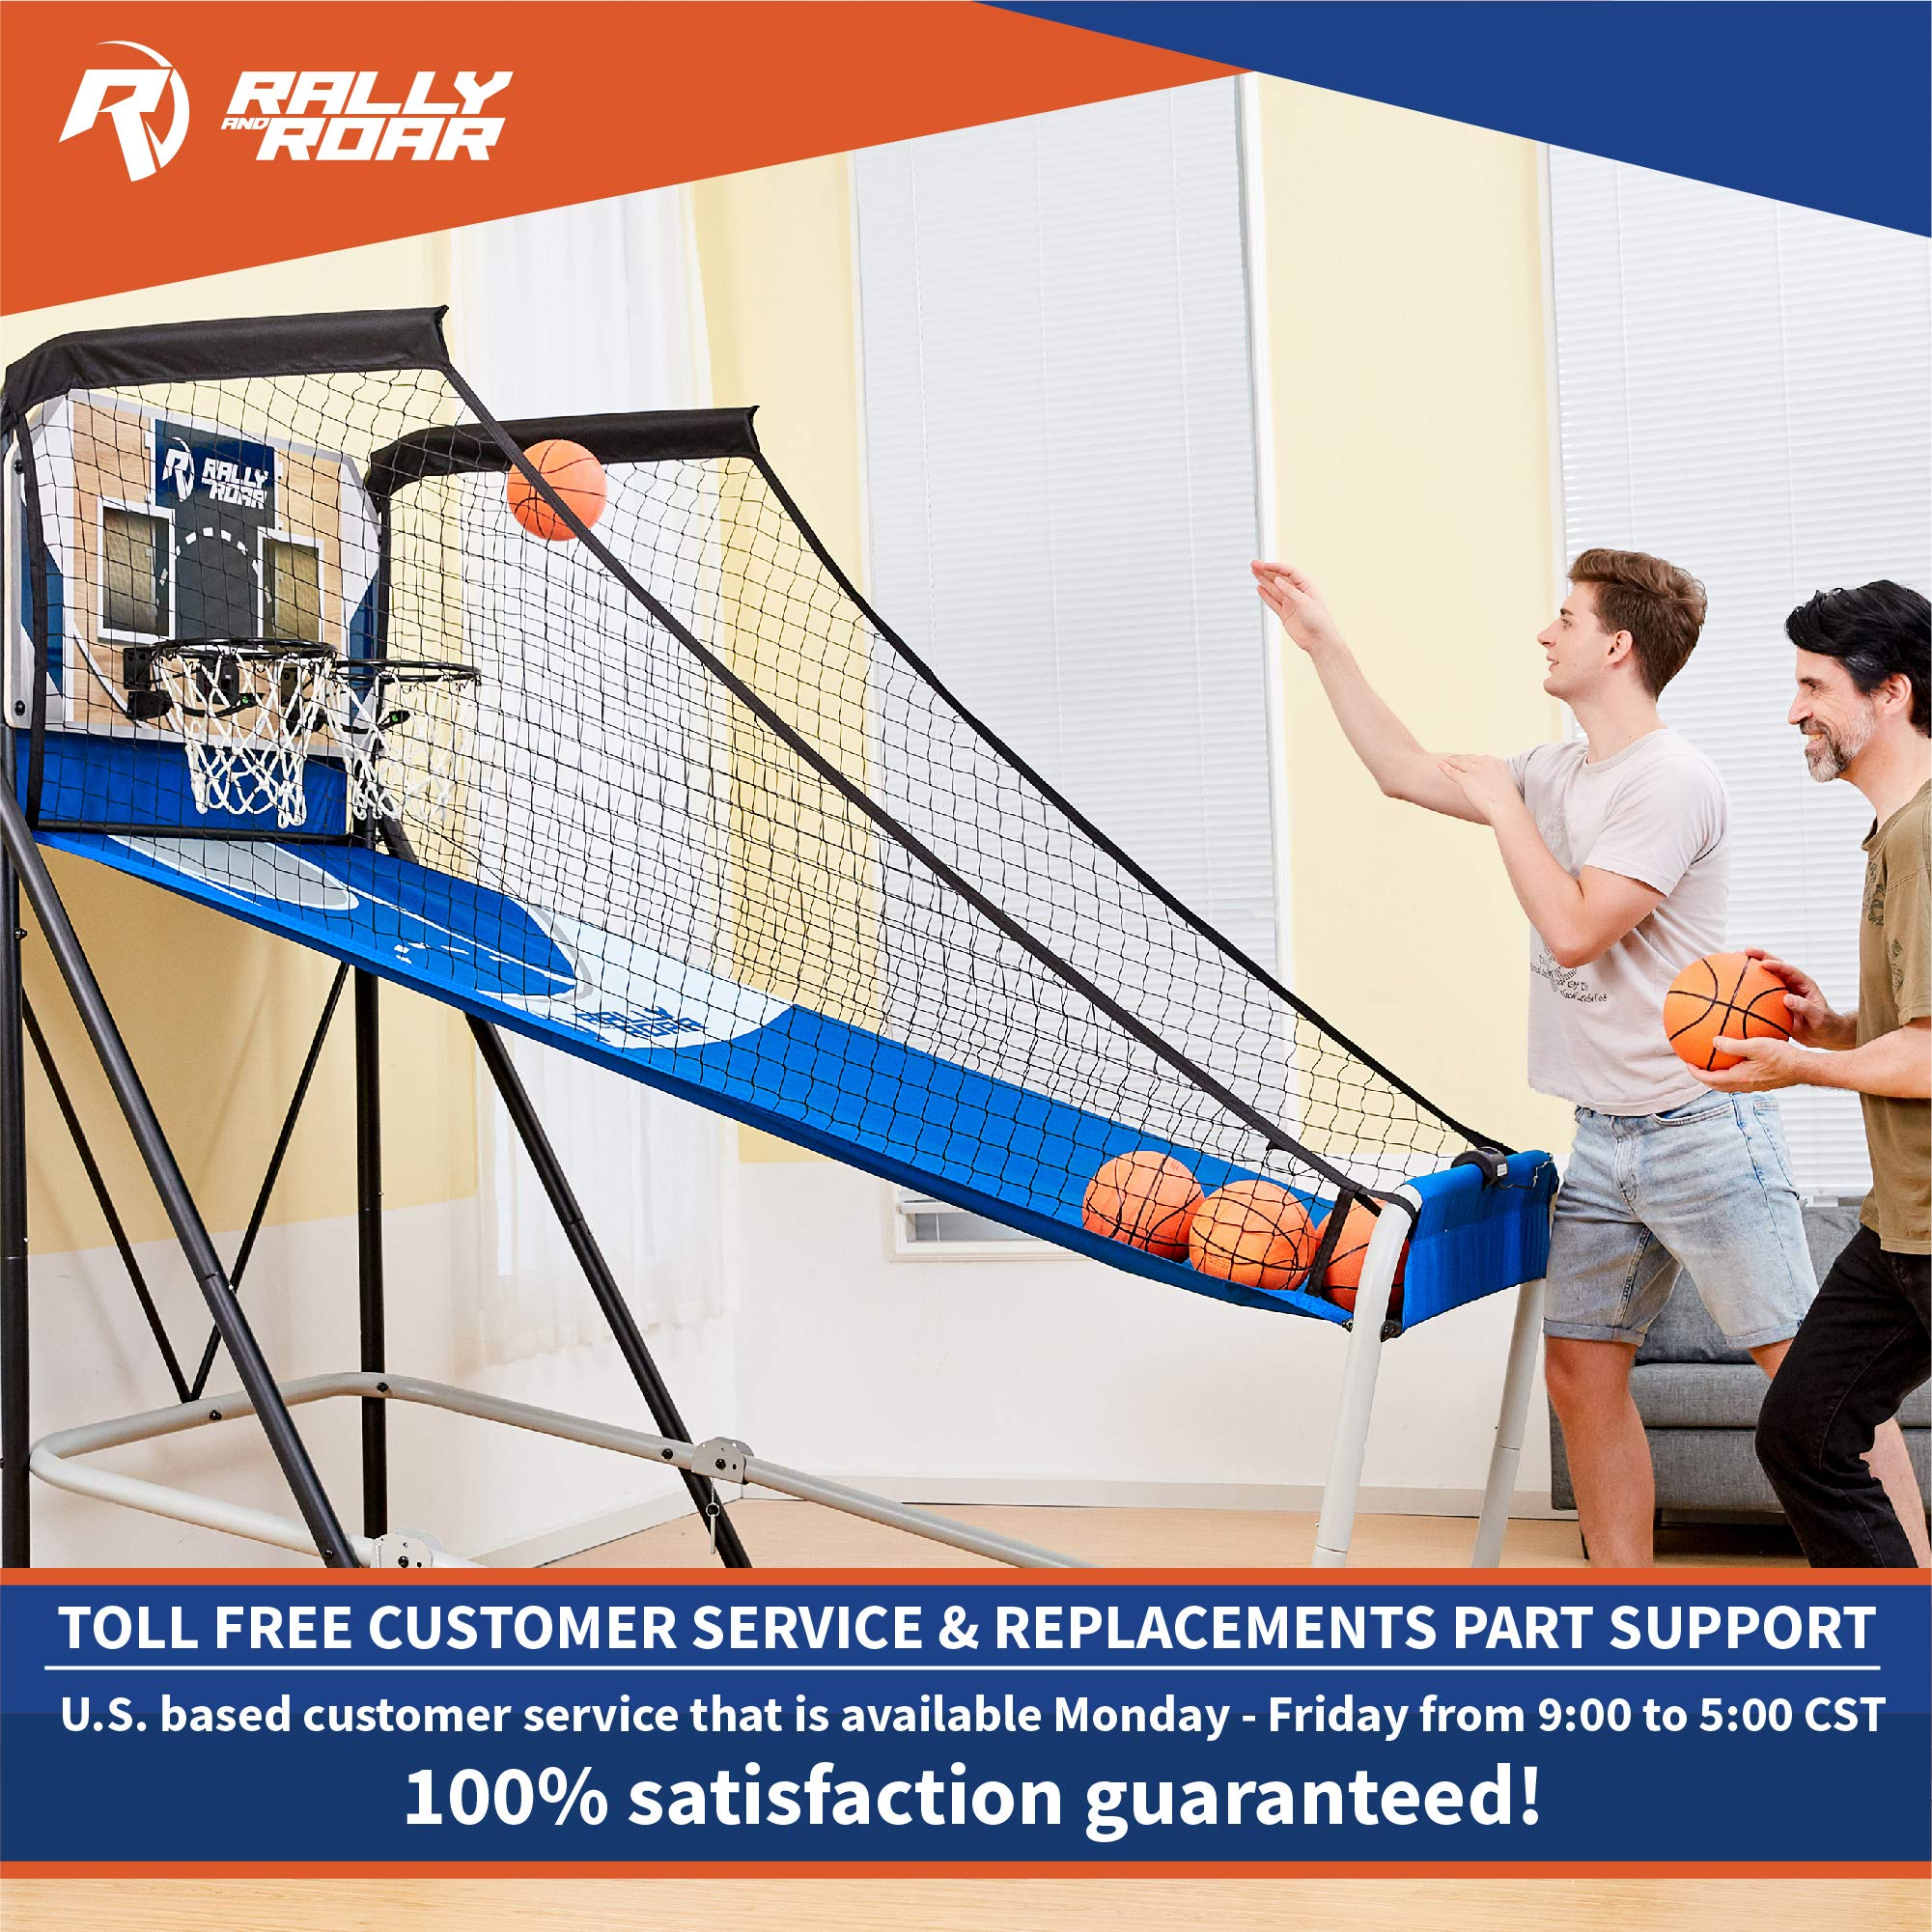 Premium Shootout Basketball Arcade Game, Home Dual Shot with LED Lights and Scorer - 8-Option Interactive Indoor Basketball Hoop Game with Double Hoops, 7 Basketballs, Pump - Foldable Space Saver by Rally and Roar (Image #7)